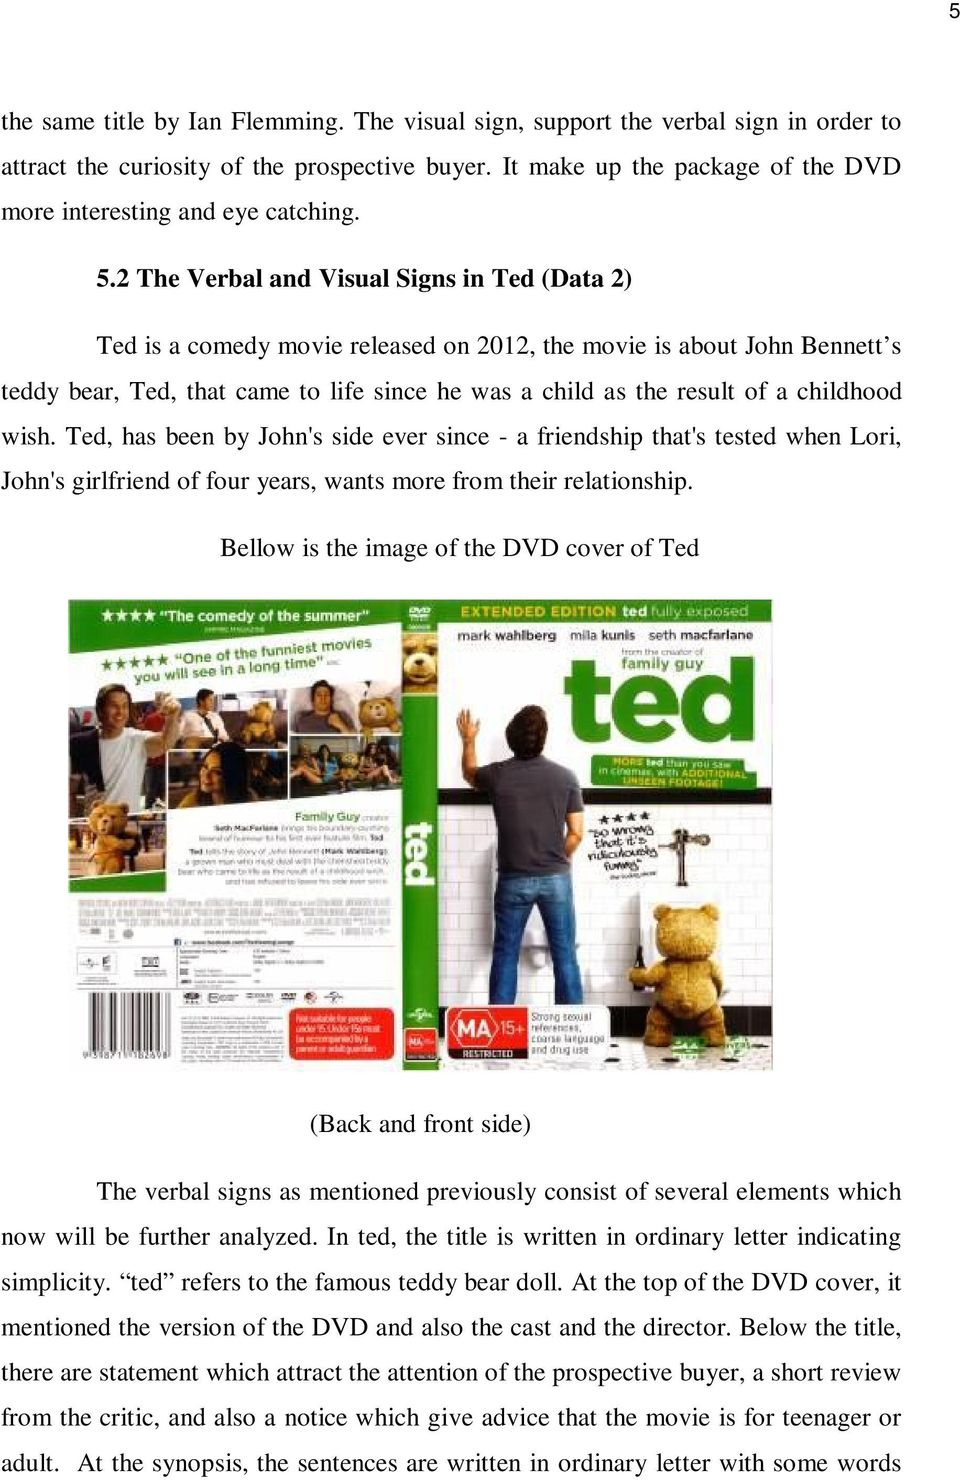 2 The Verbal and Visual Signs in Ted (Data 2) Ted is a comedy movie released on 2012, the movie is about John Bennett s teddy bear, Ted, that came to life since he was a child as the result of a